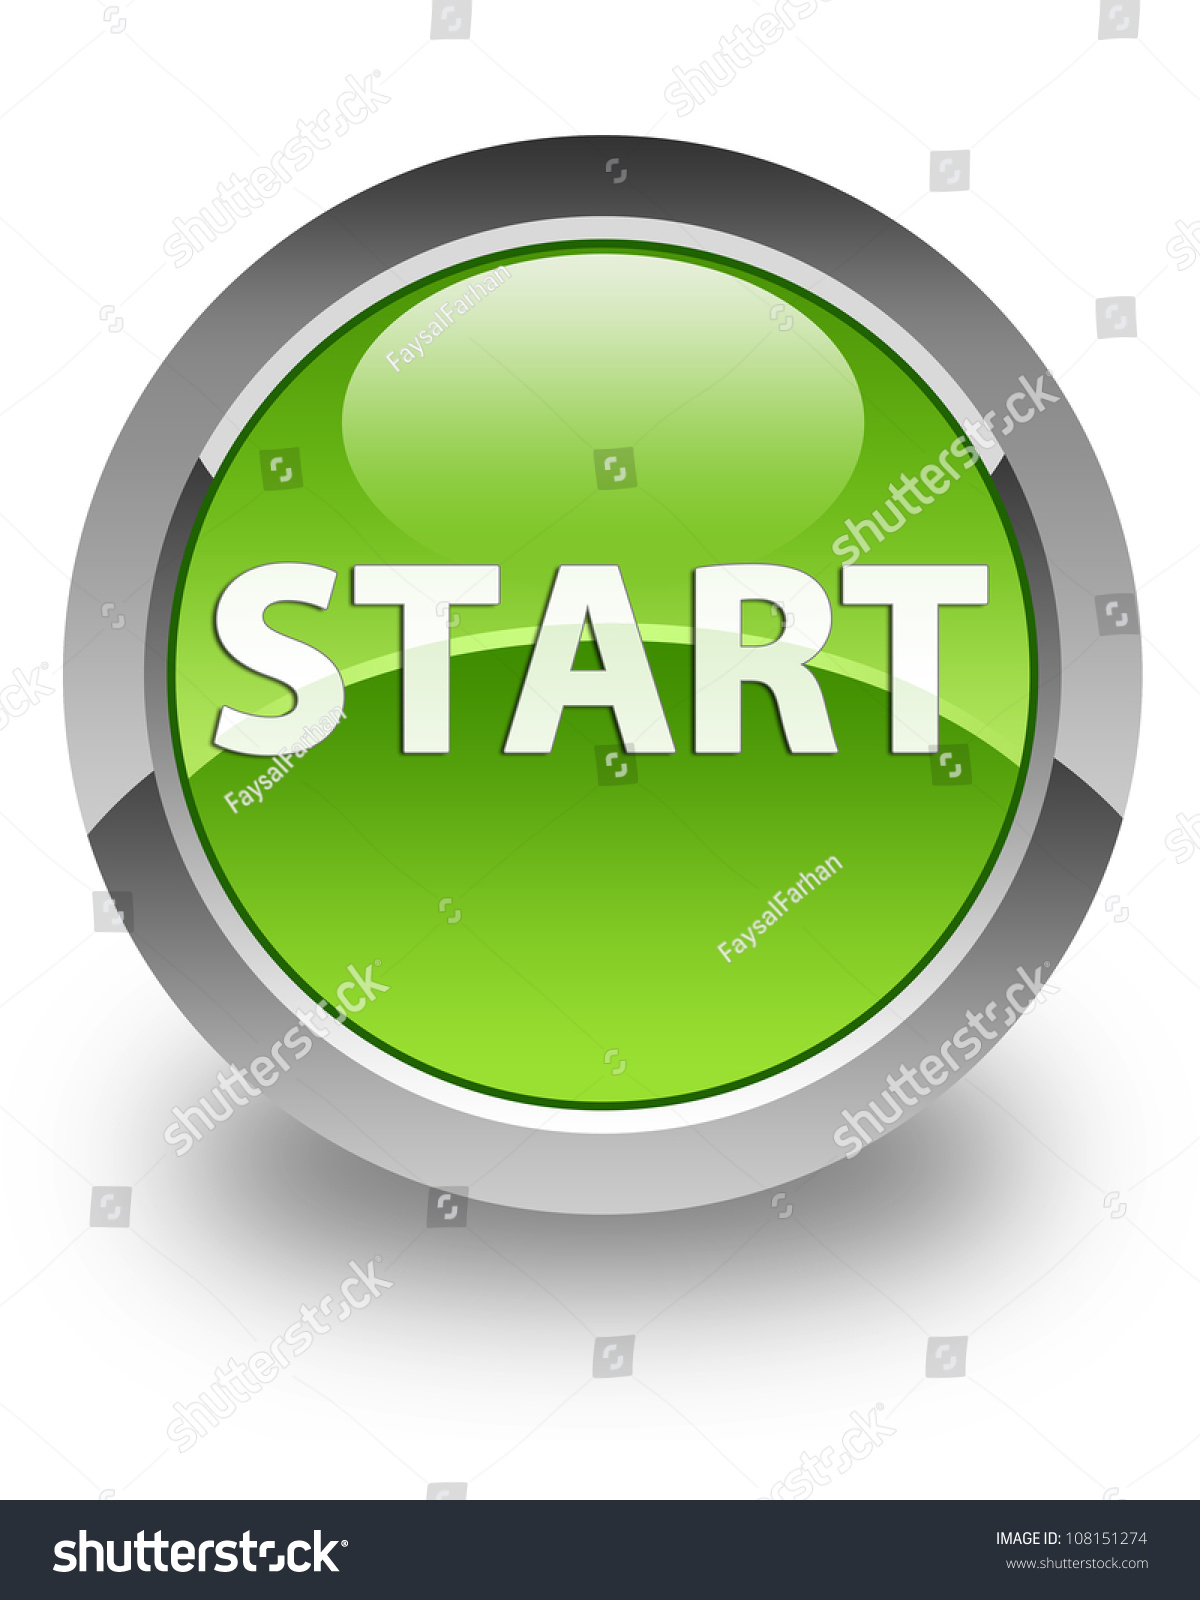 Start Icon On Glossy Green Round Button Stock Photo